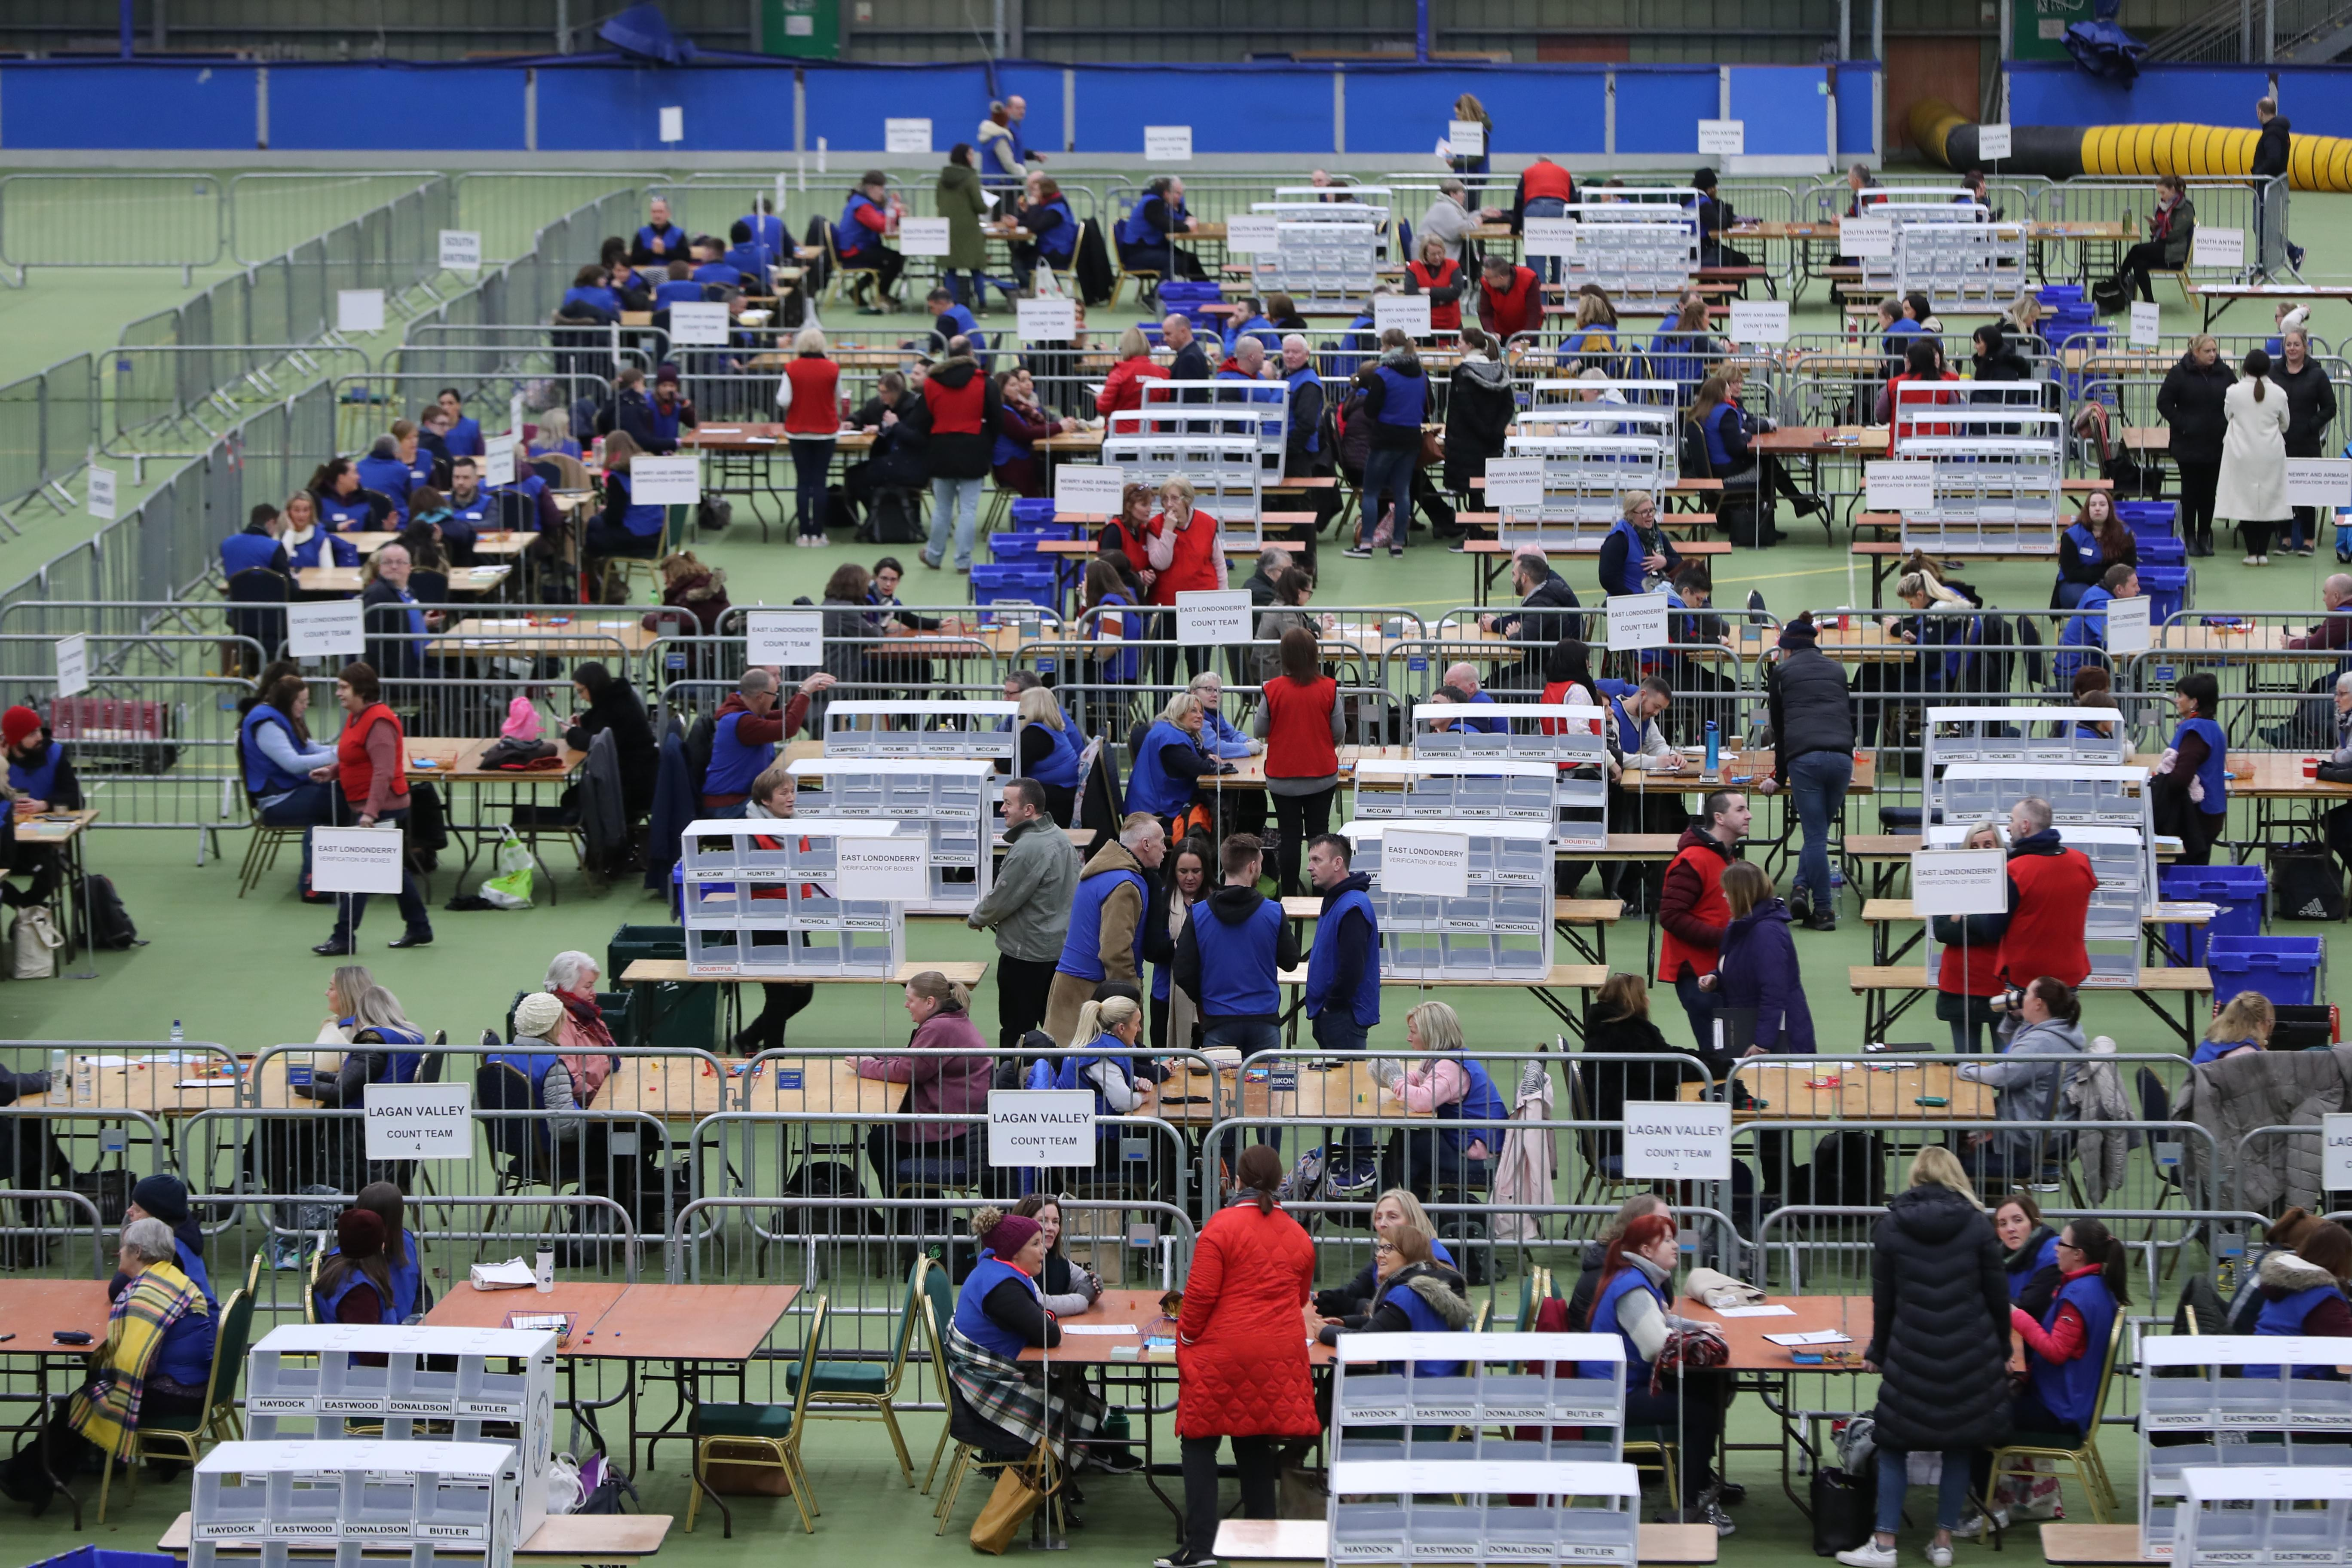 Ballots are counted at the Meadowbank Sports Arena, Magherafelt, for the 2019 General Election. (PA)